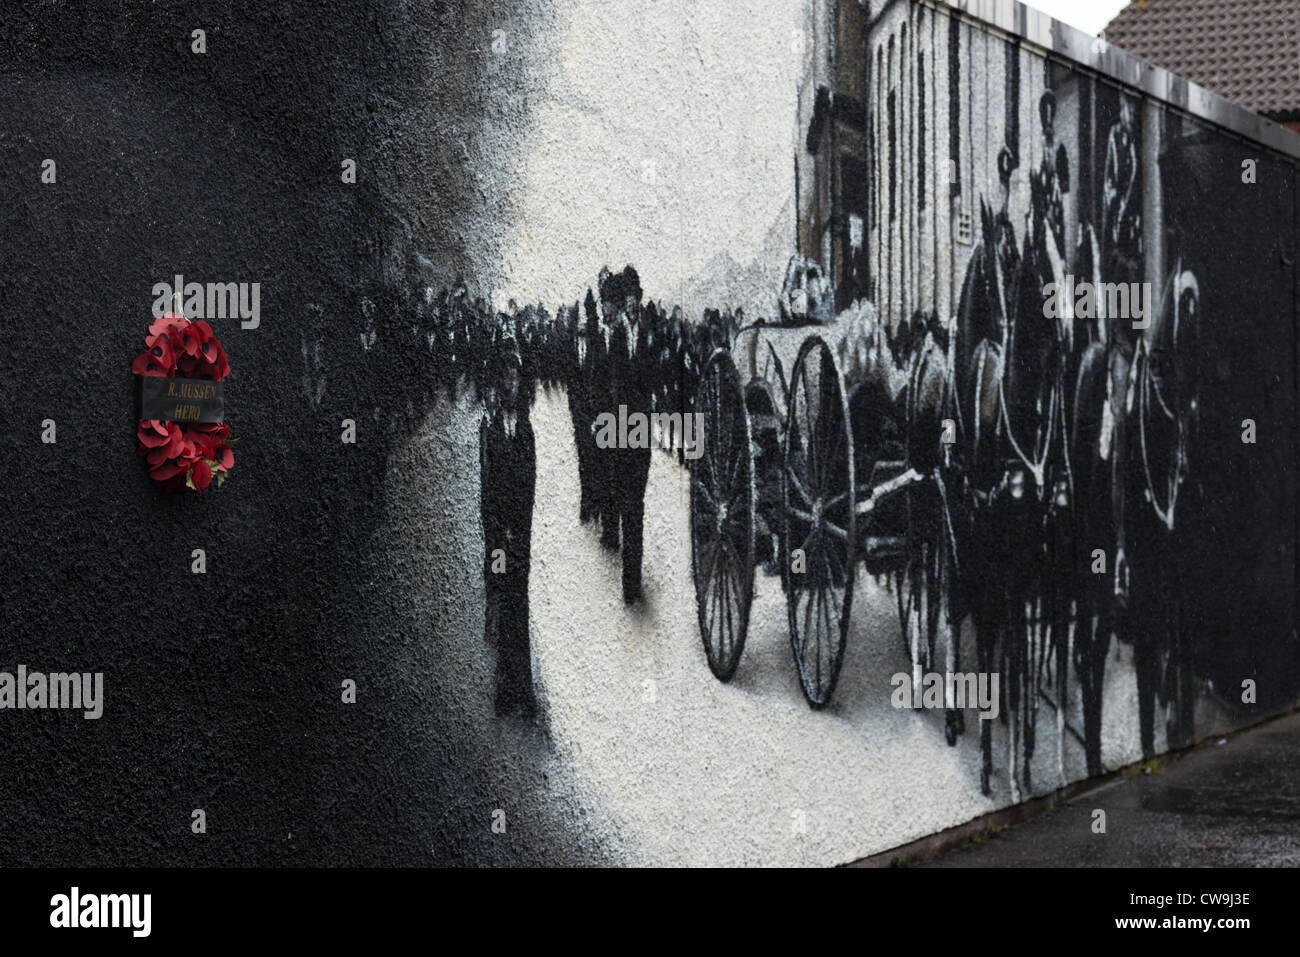 Mural and memorial on Shankill road, Belfast in Northern Ireland. - Stock Image